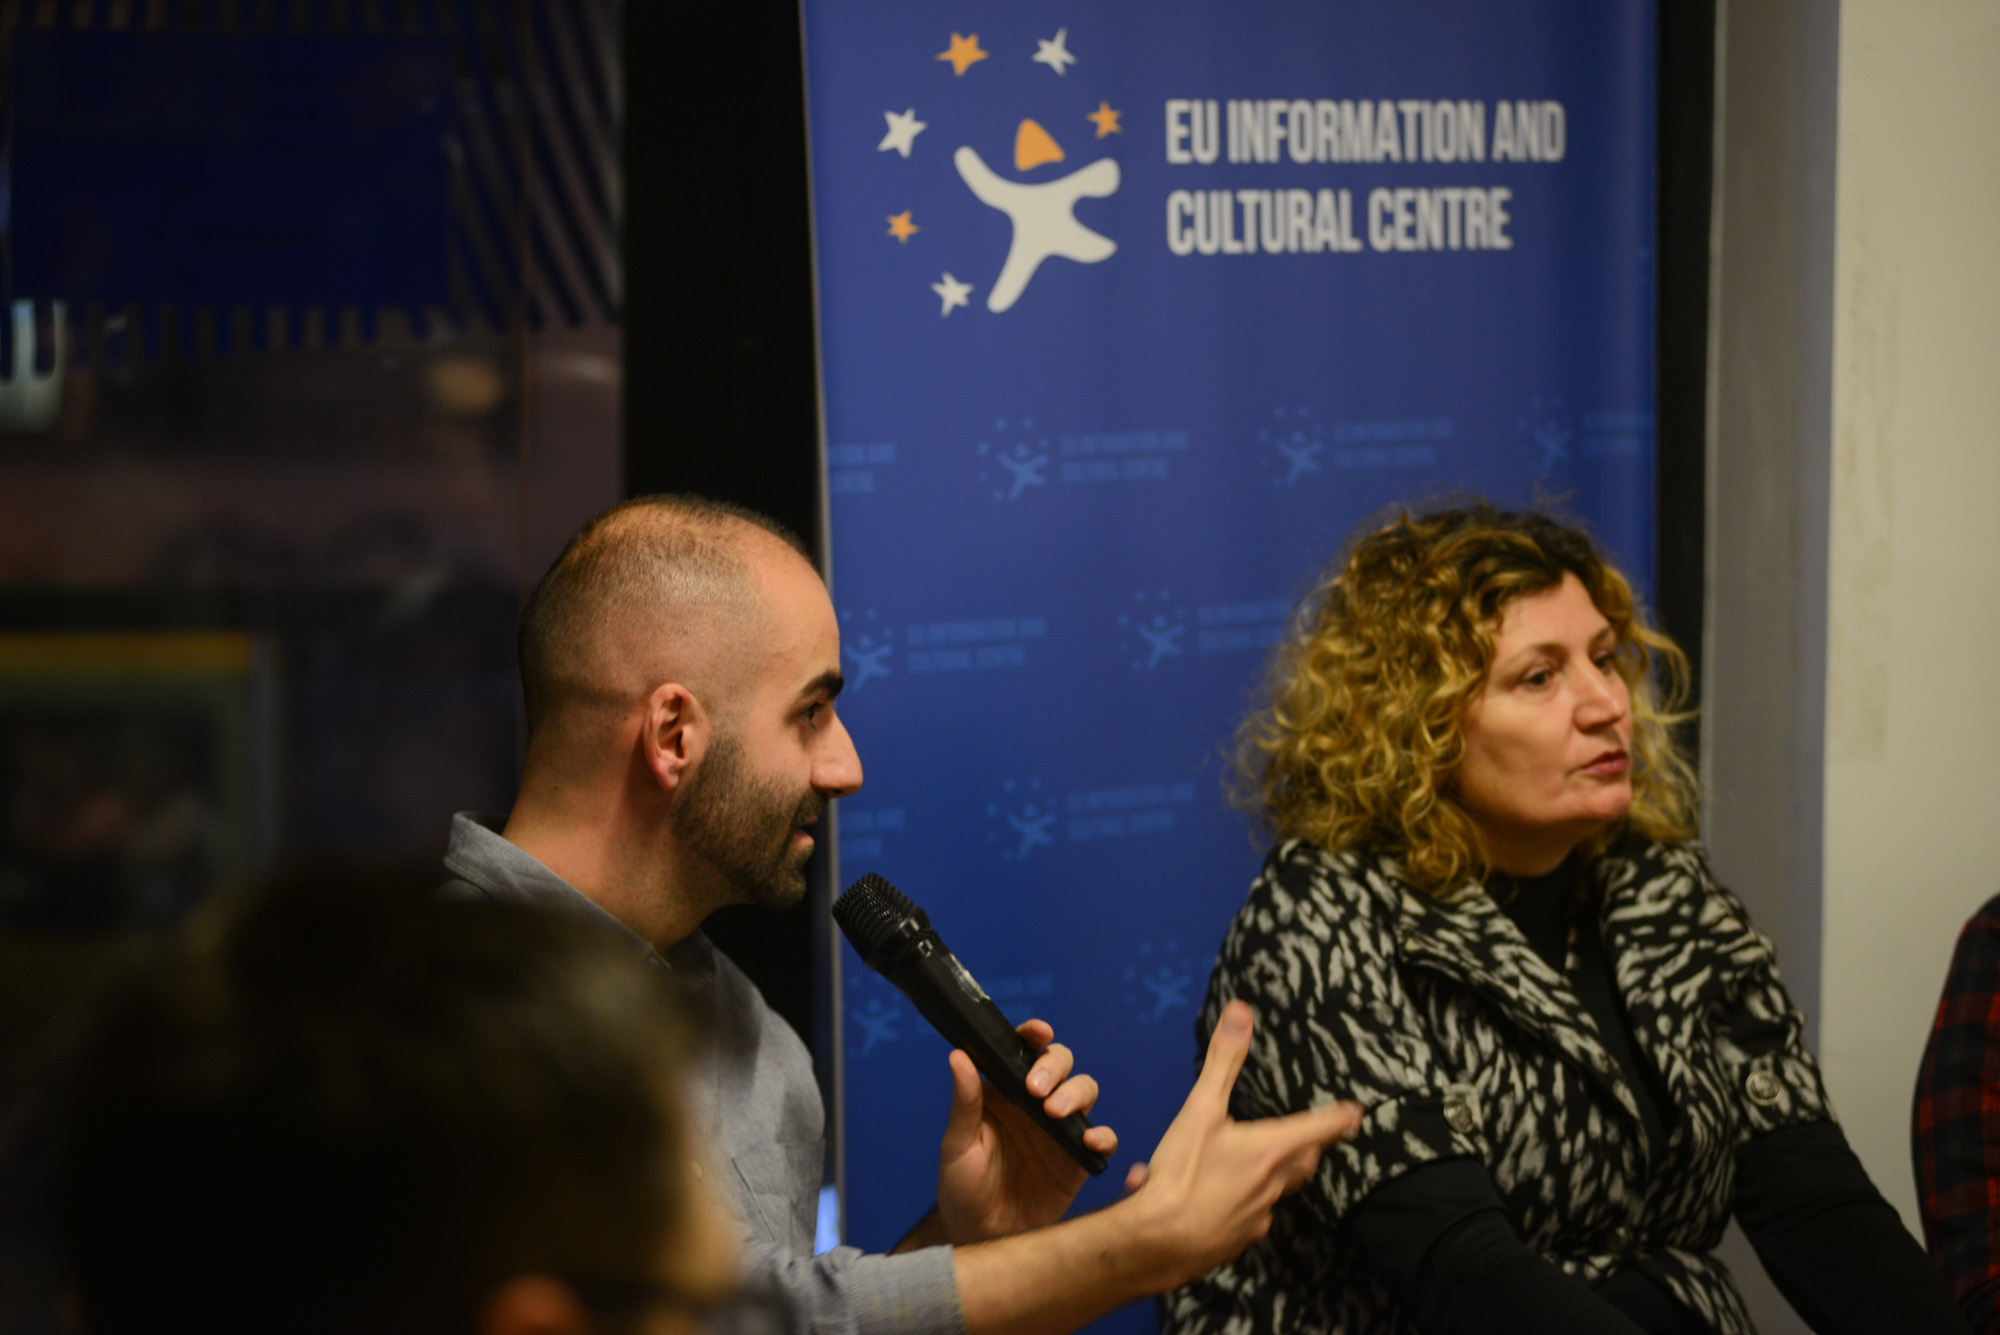 5122018-being-succesfull-woman-in-kosovo-debate-at-euicc-4-of-7_45470351824_o